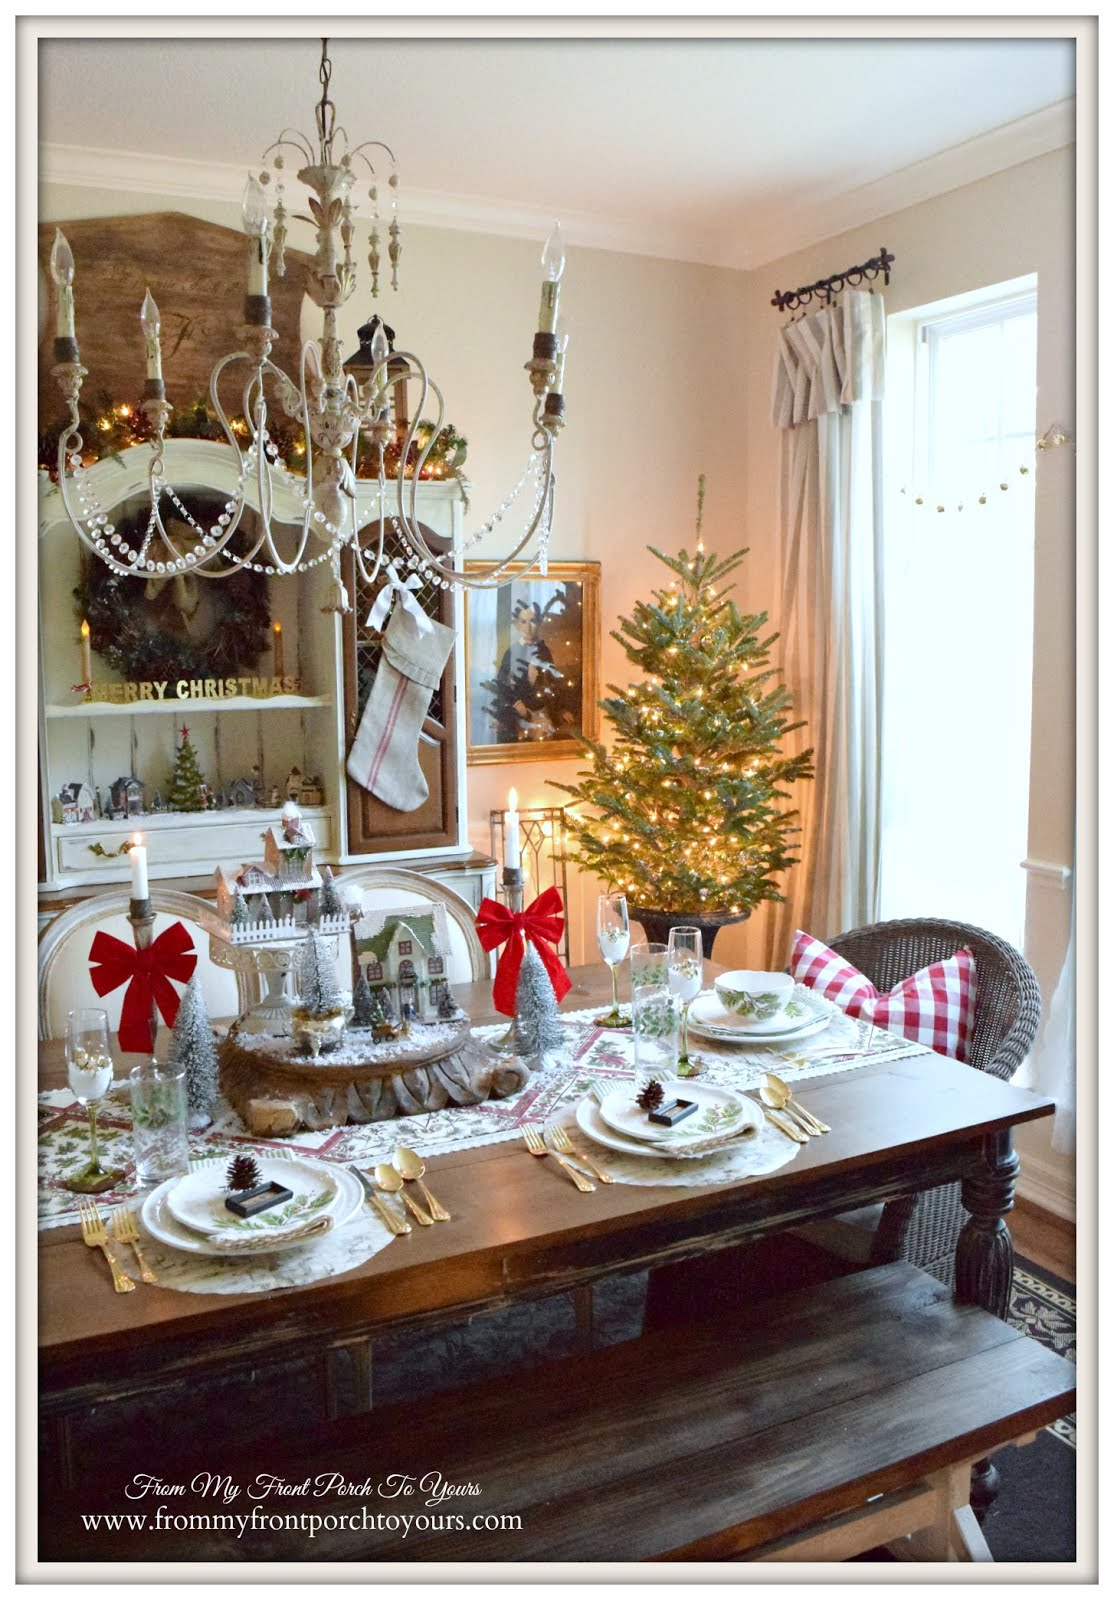 From My Front Porch To Yours: Farmhouse Christmas Dining Room